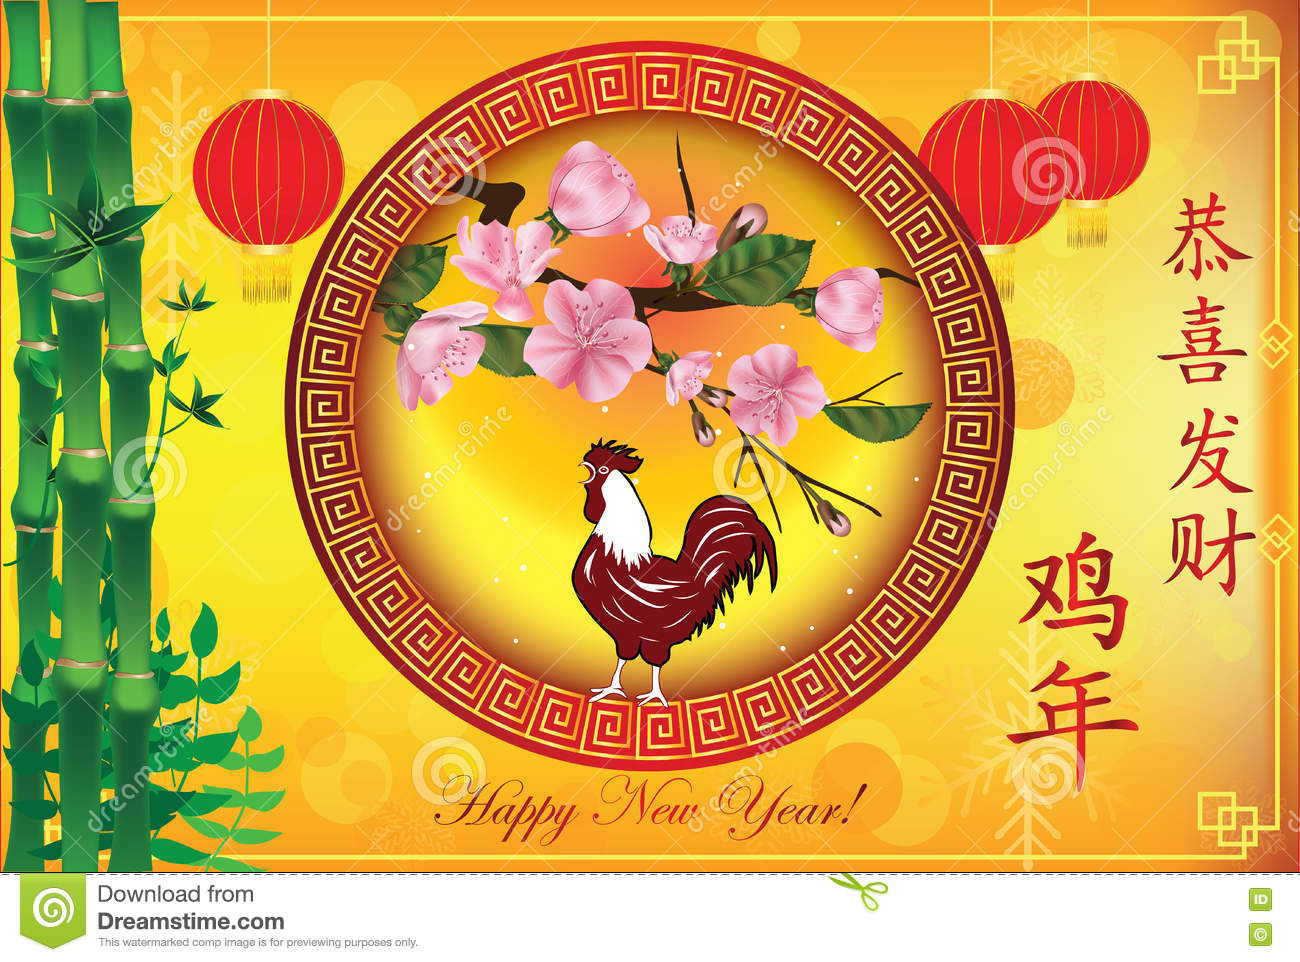 Year of the rooster greeting card stock illustration greeting card for spring festival 2017 the year of the rooster text year of the rooster happy new year contains cherry flowers paper lanterns m4hsunfo